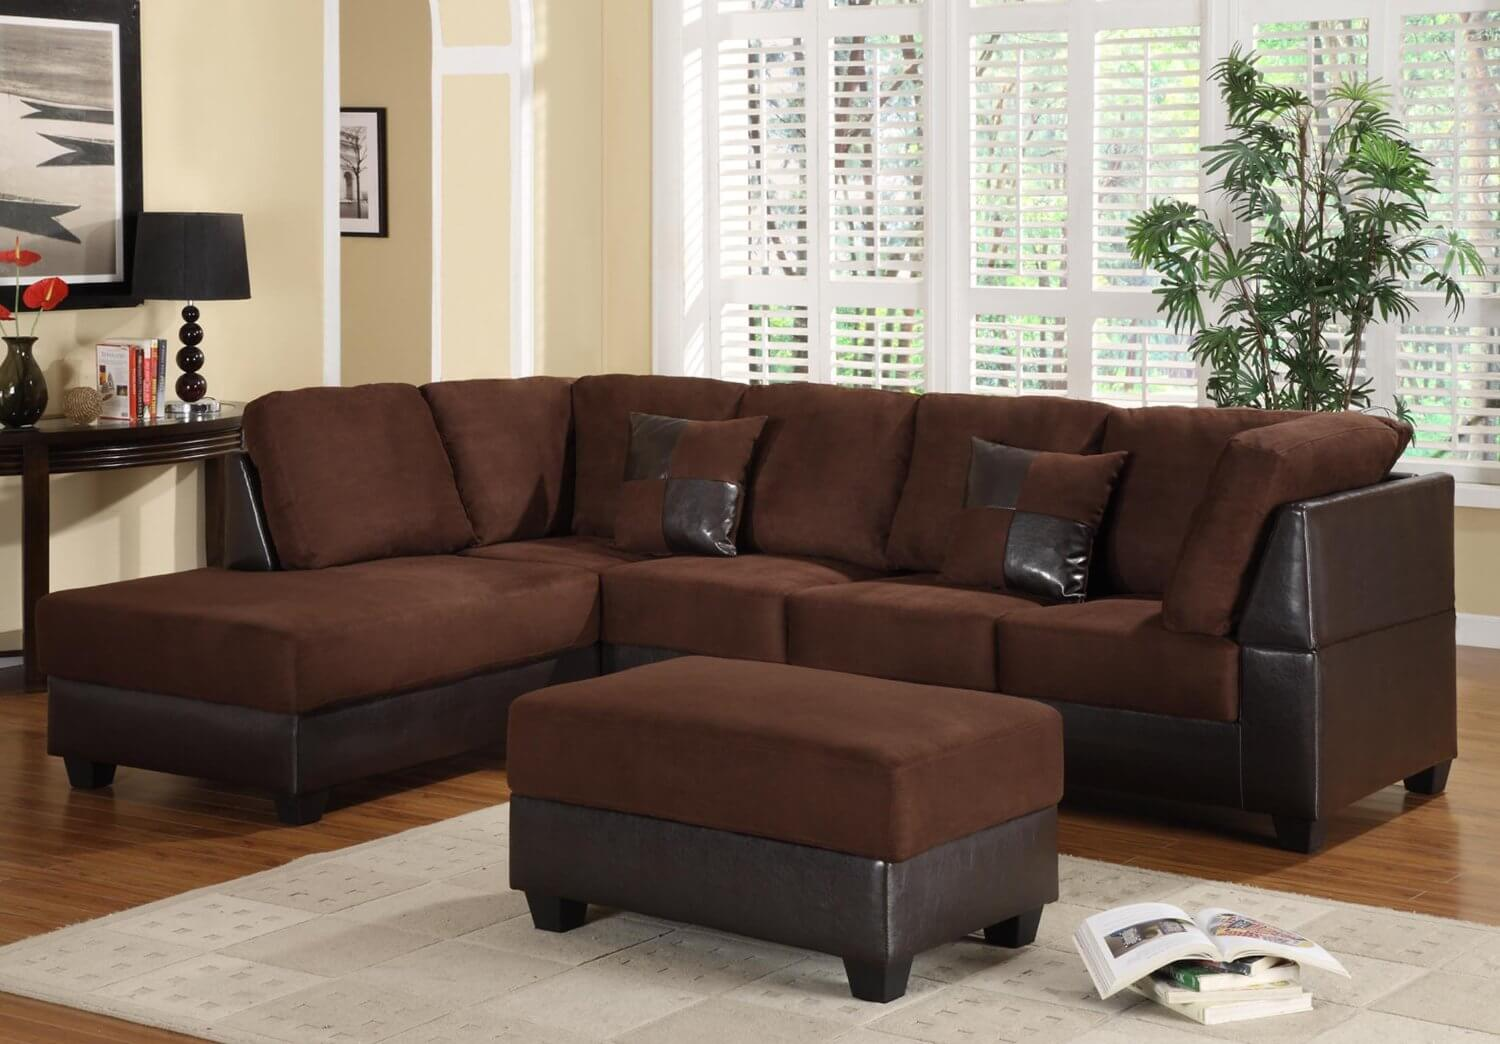 40 Cheap Sectional Sofas Under 500 For 2019